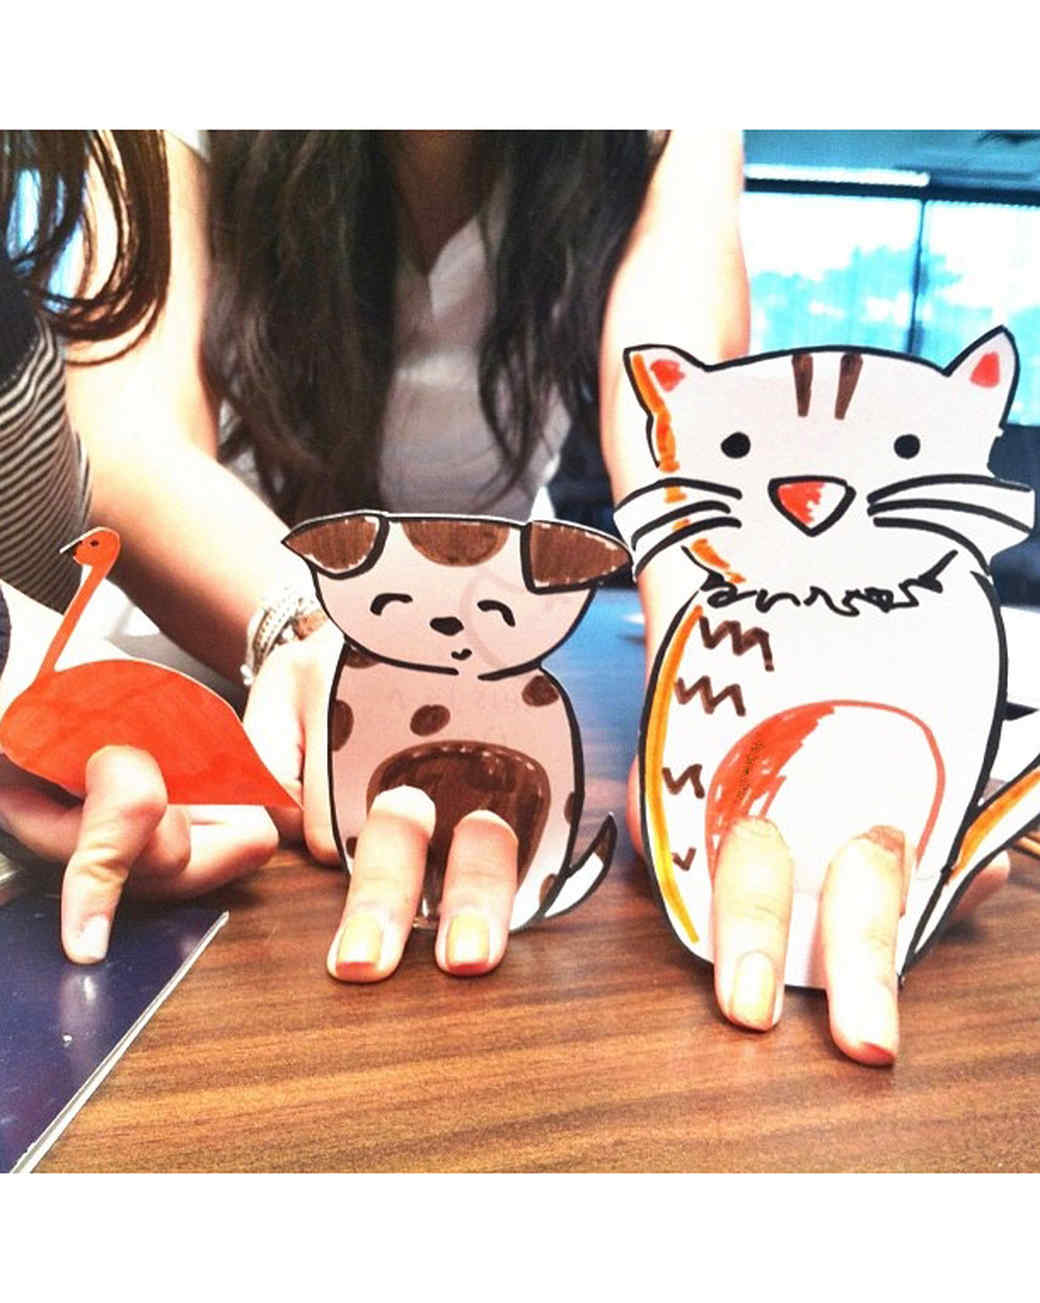 crafts-for-kids-submission-2-hannerful.jpg